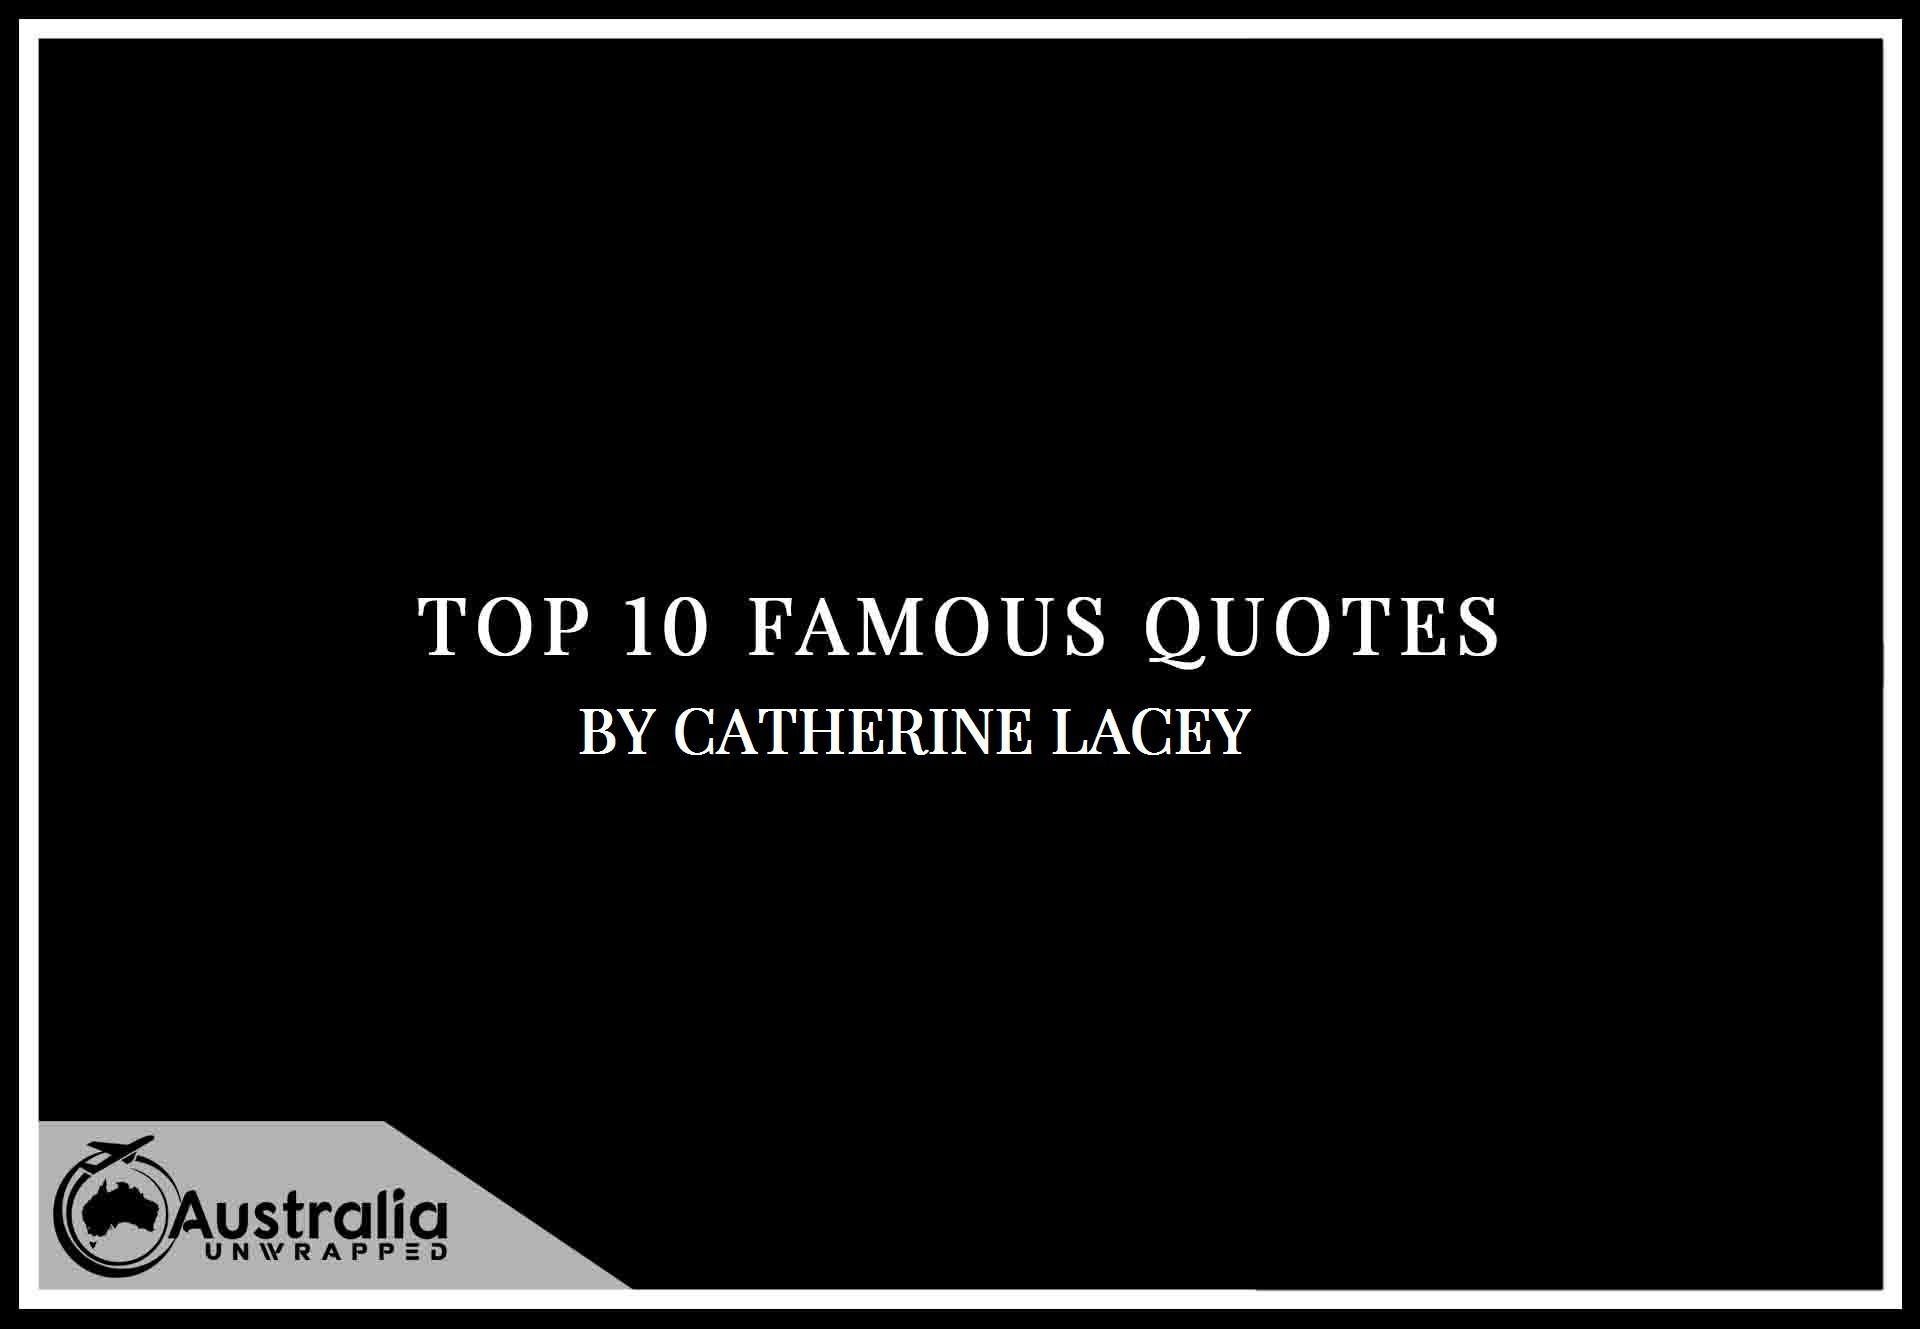 Catherine Lacey's Top 10 Popular and Famous Quotes